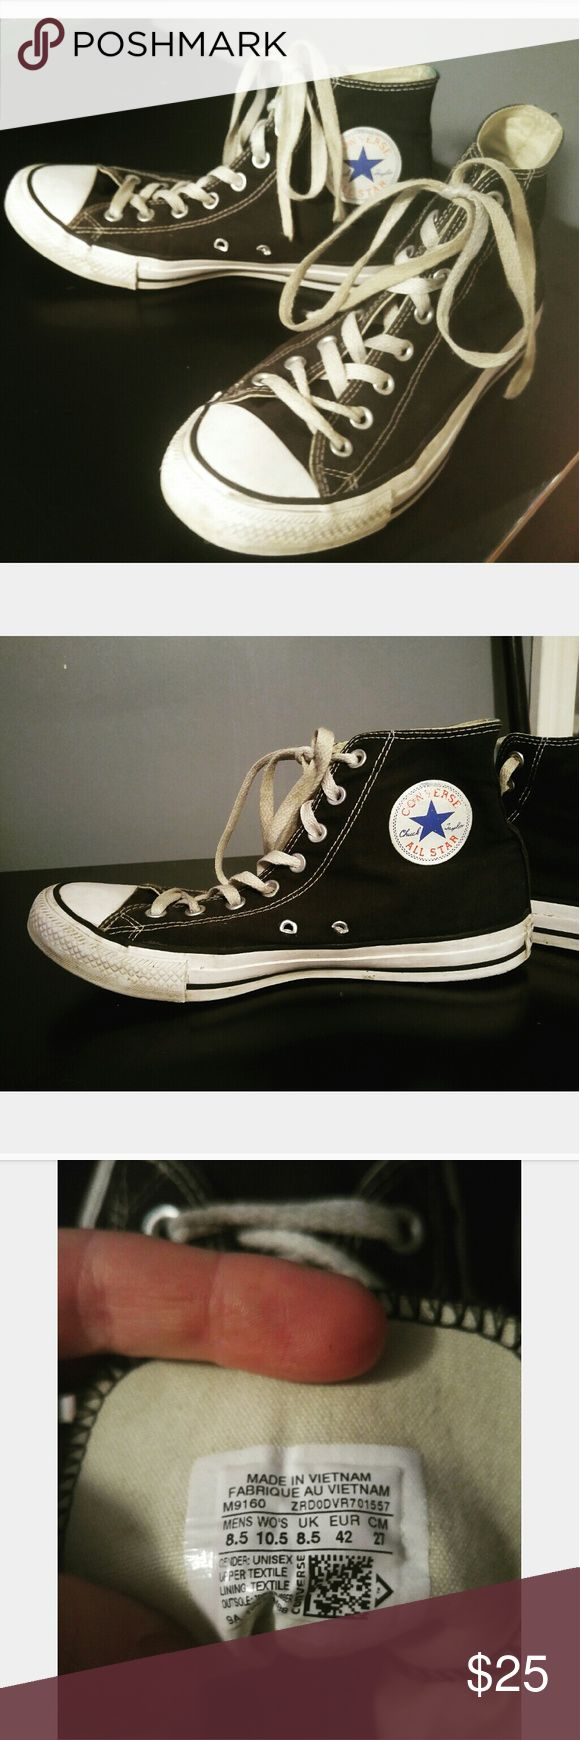 Black Hightop Converse Sneakers Black hightop sneakers by Converse.  Worn will alot of life still in them.  With new white laces and and a good wipe down, these babies will clean up nice!  No rips or tears!  Mens 8.5 or ladies 10.5 Converse Shoes Sneakers